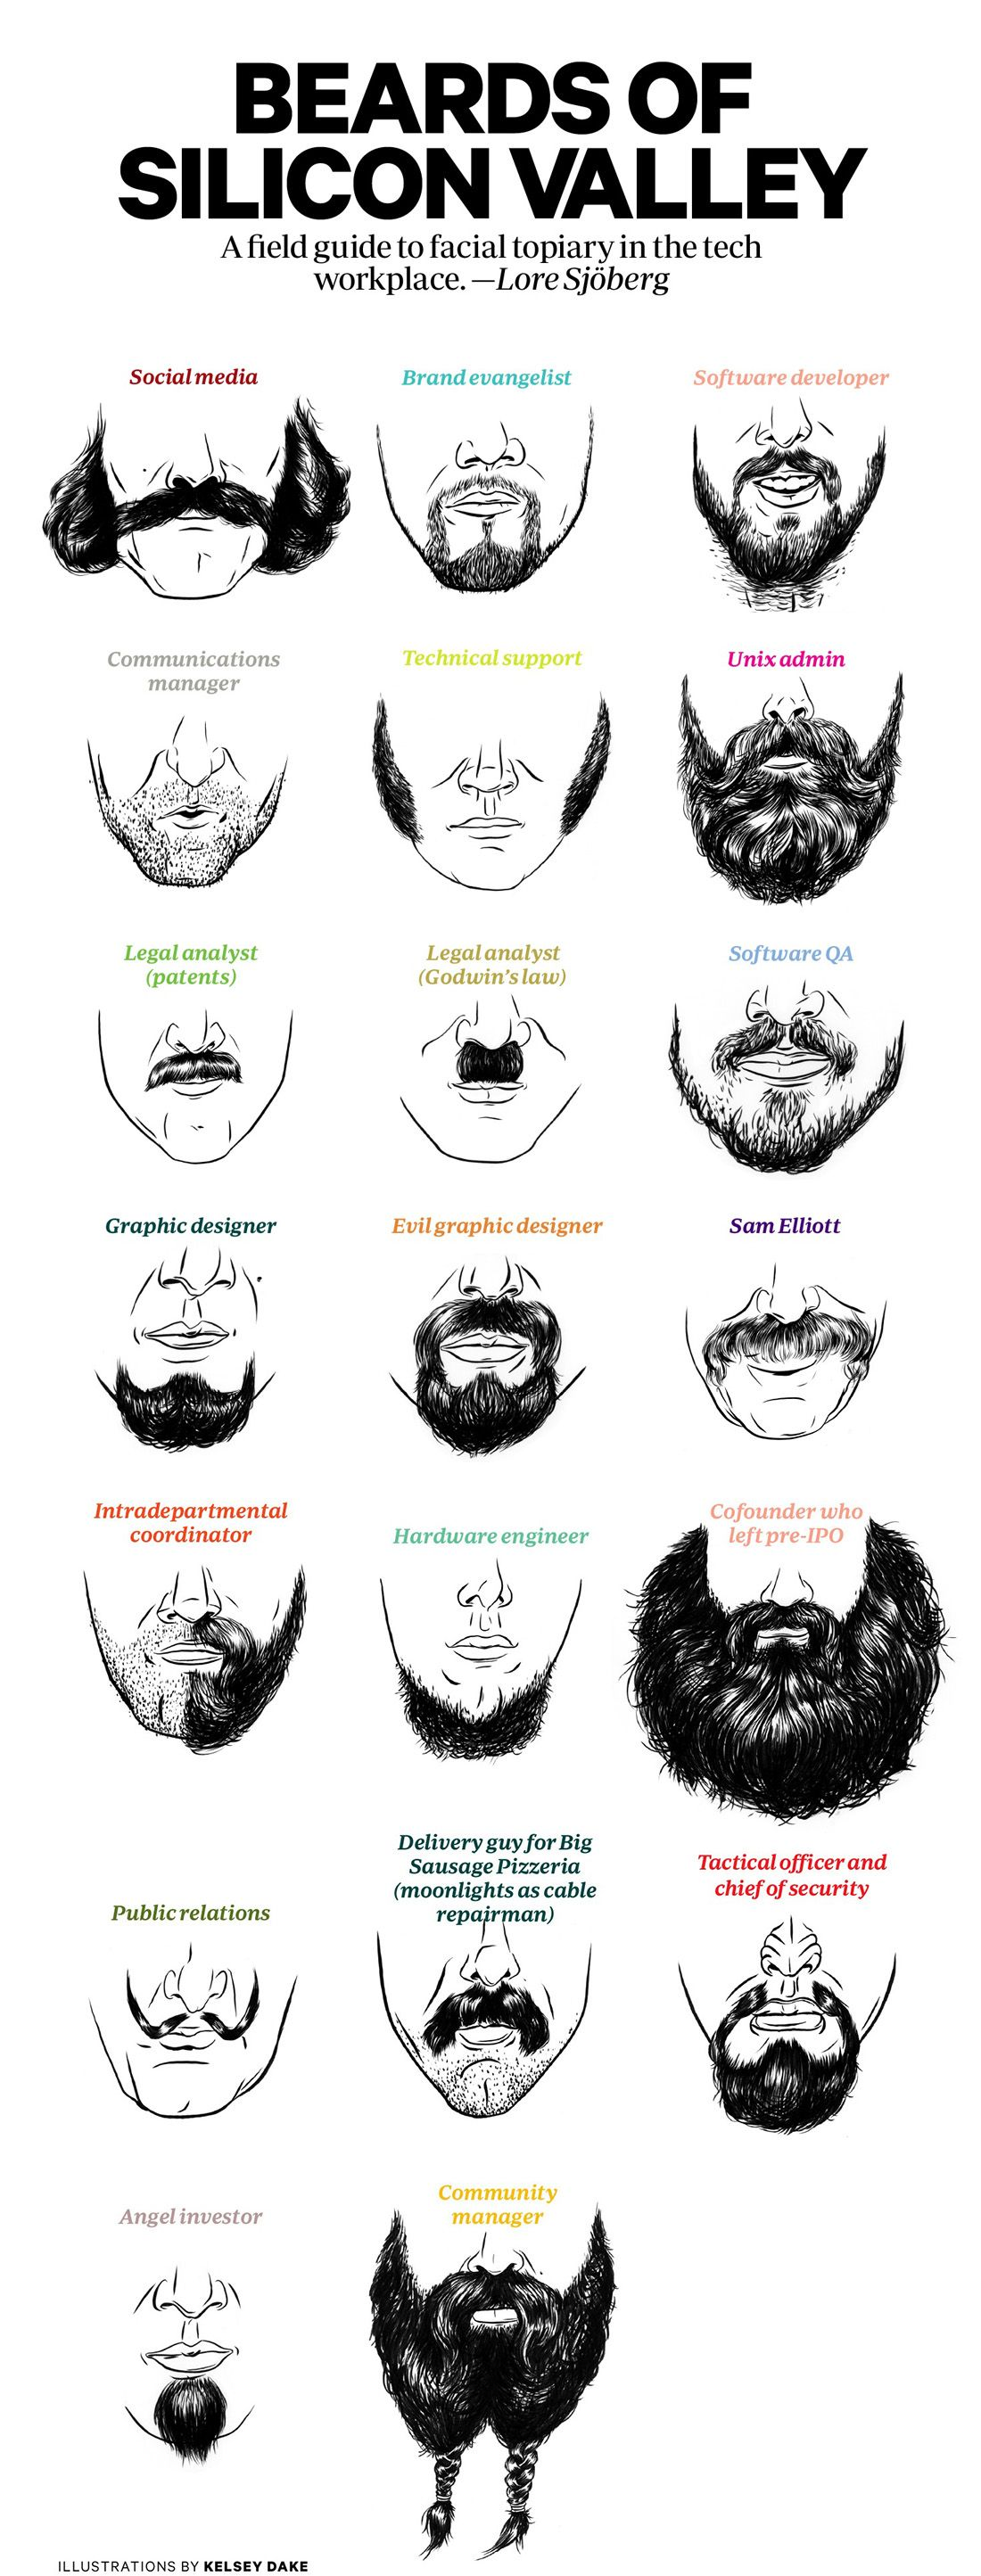 Beards of Silicon Valley A field guide to facial topiary